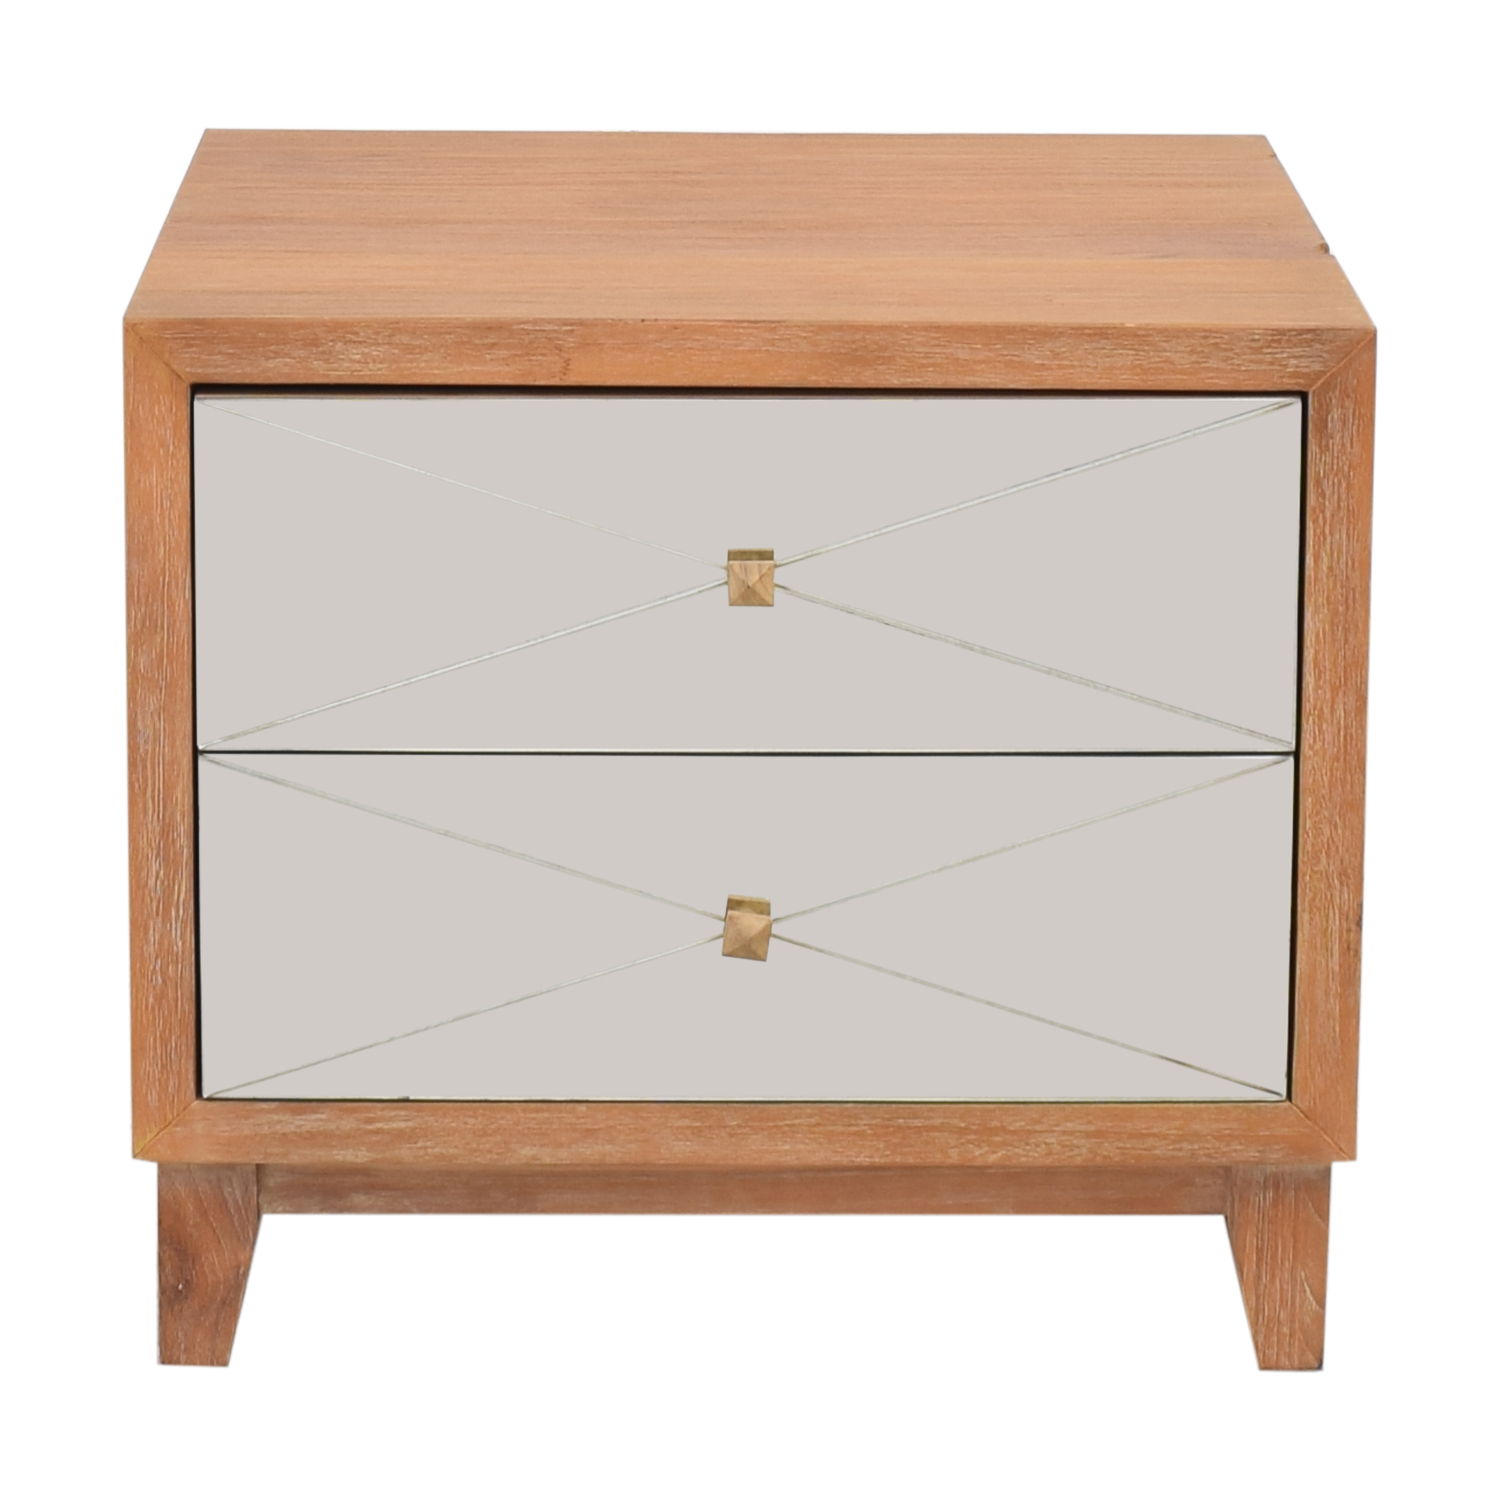 Brownstone Furniture Brownstone Furniture Mirrored Nightstand ct